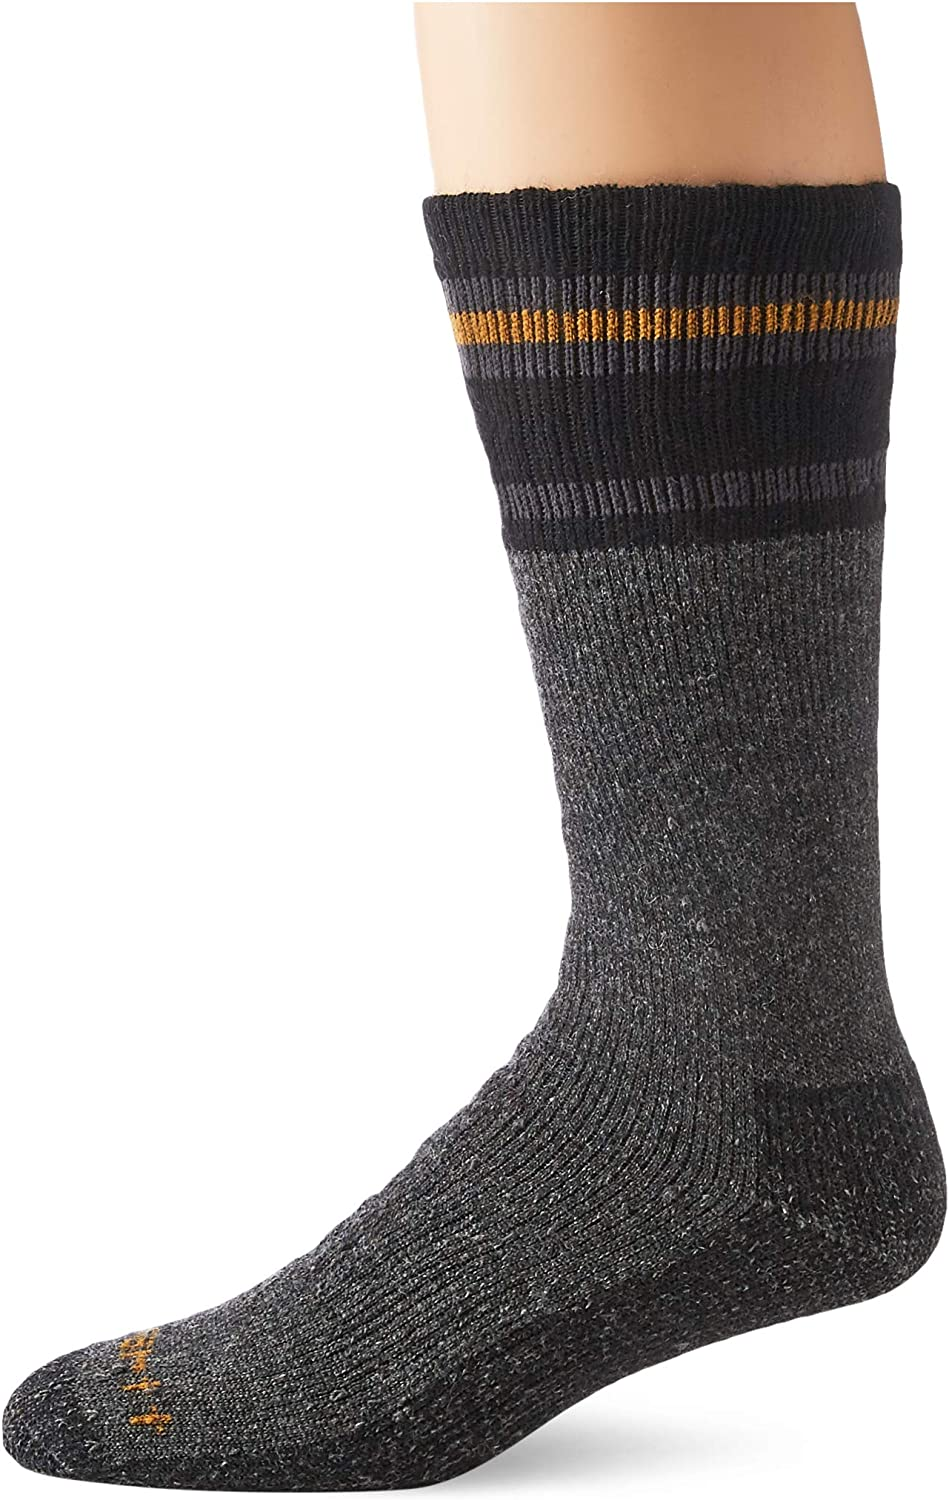 Carhartt Homme 2 Pack Full Coussin Steel-Toe Coton travail chaussettes Boot Shoe 11-15